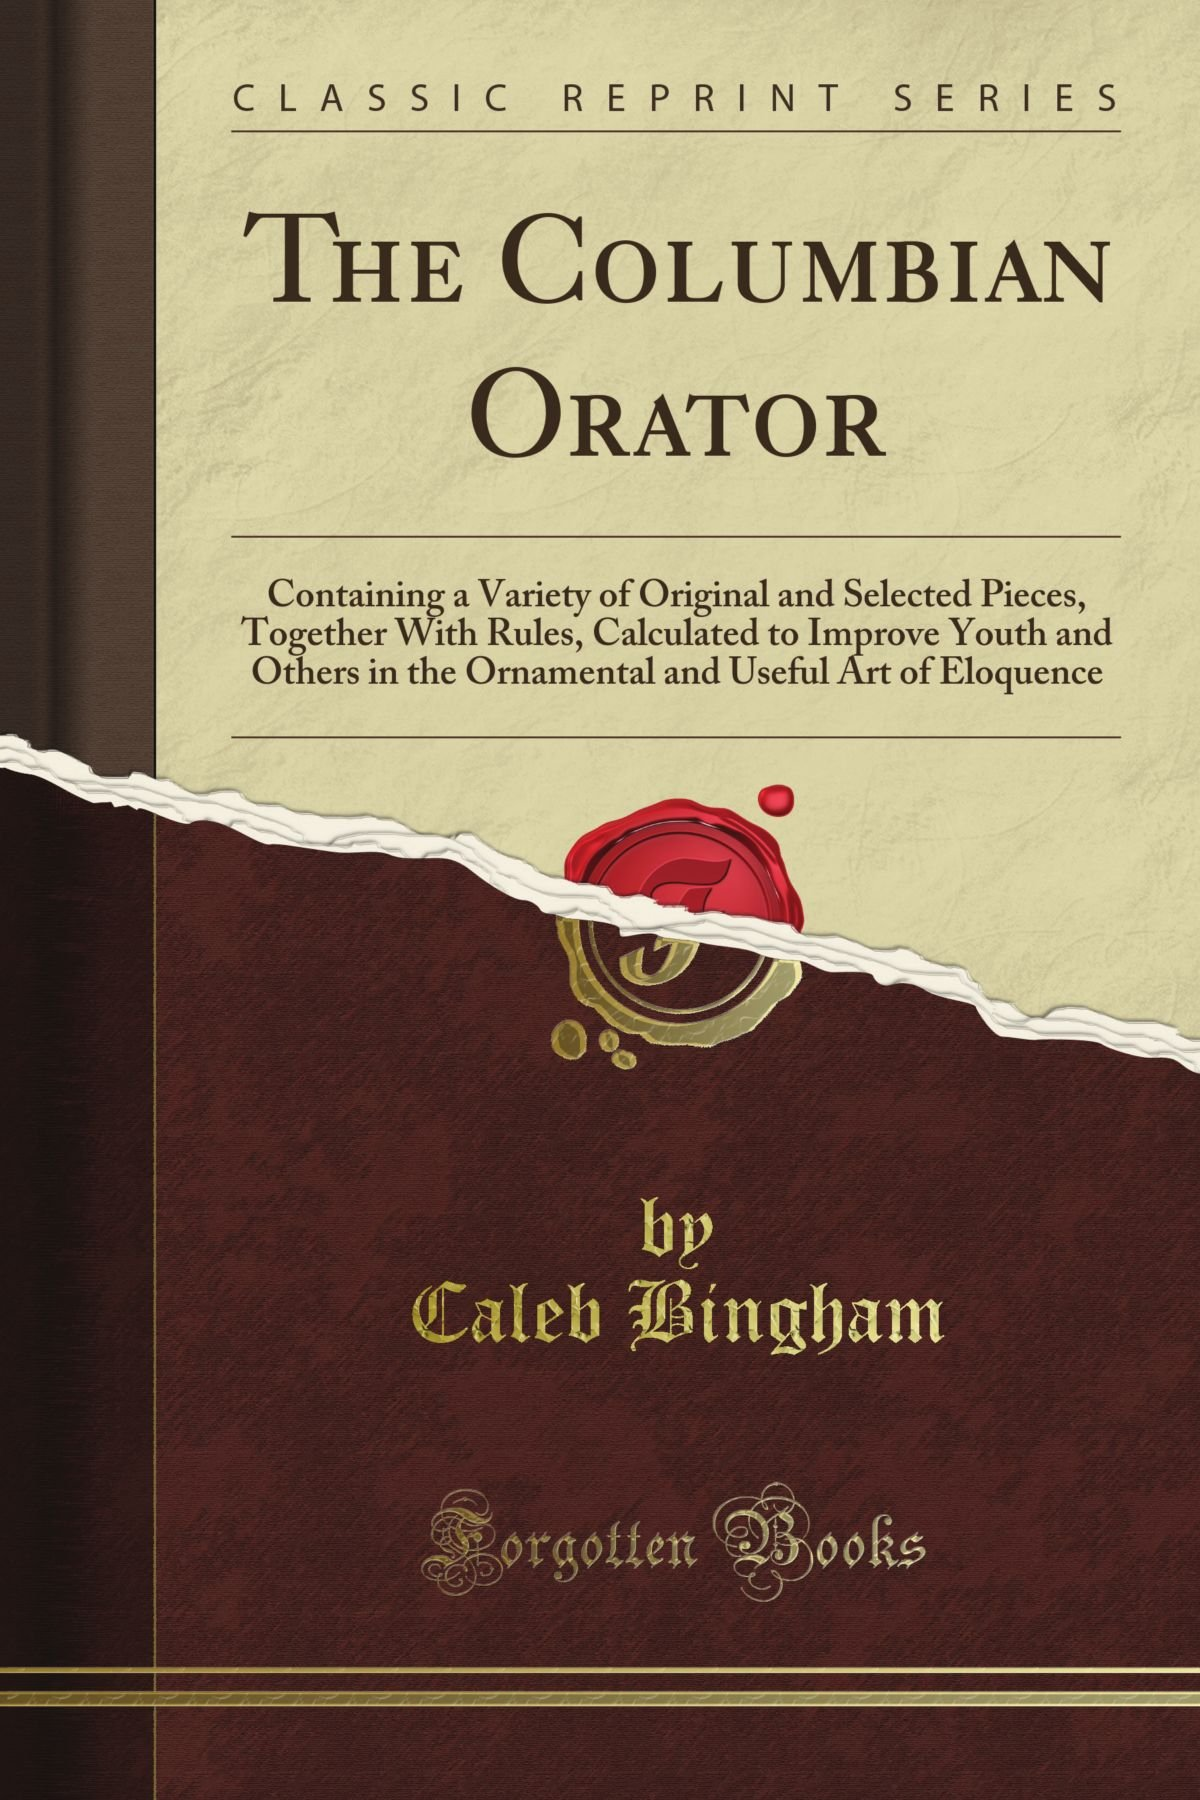 The Columbian Orator: Containing a Variety of Original and Selected Pieces, Together With Rules, Calculated to Improve Youth and Others in the Ornamental and Useful Art of Eloquence (Classic Reprint) ebook